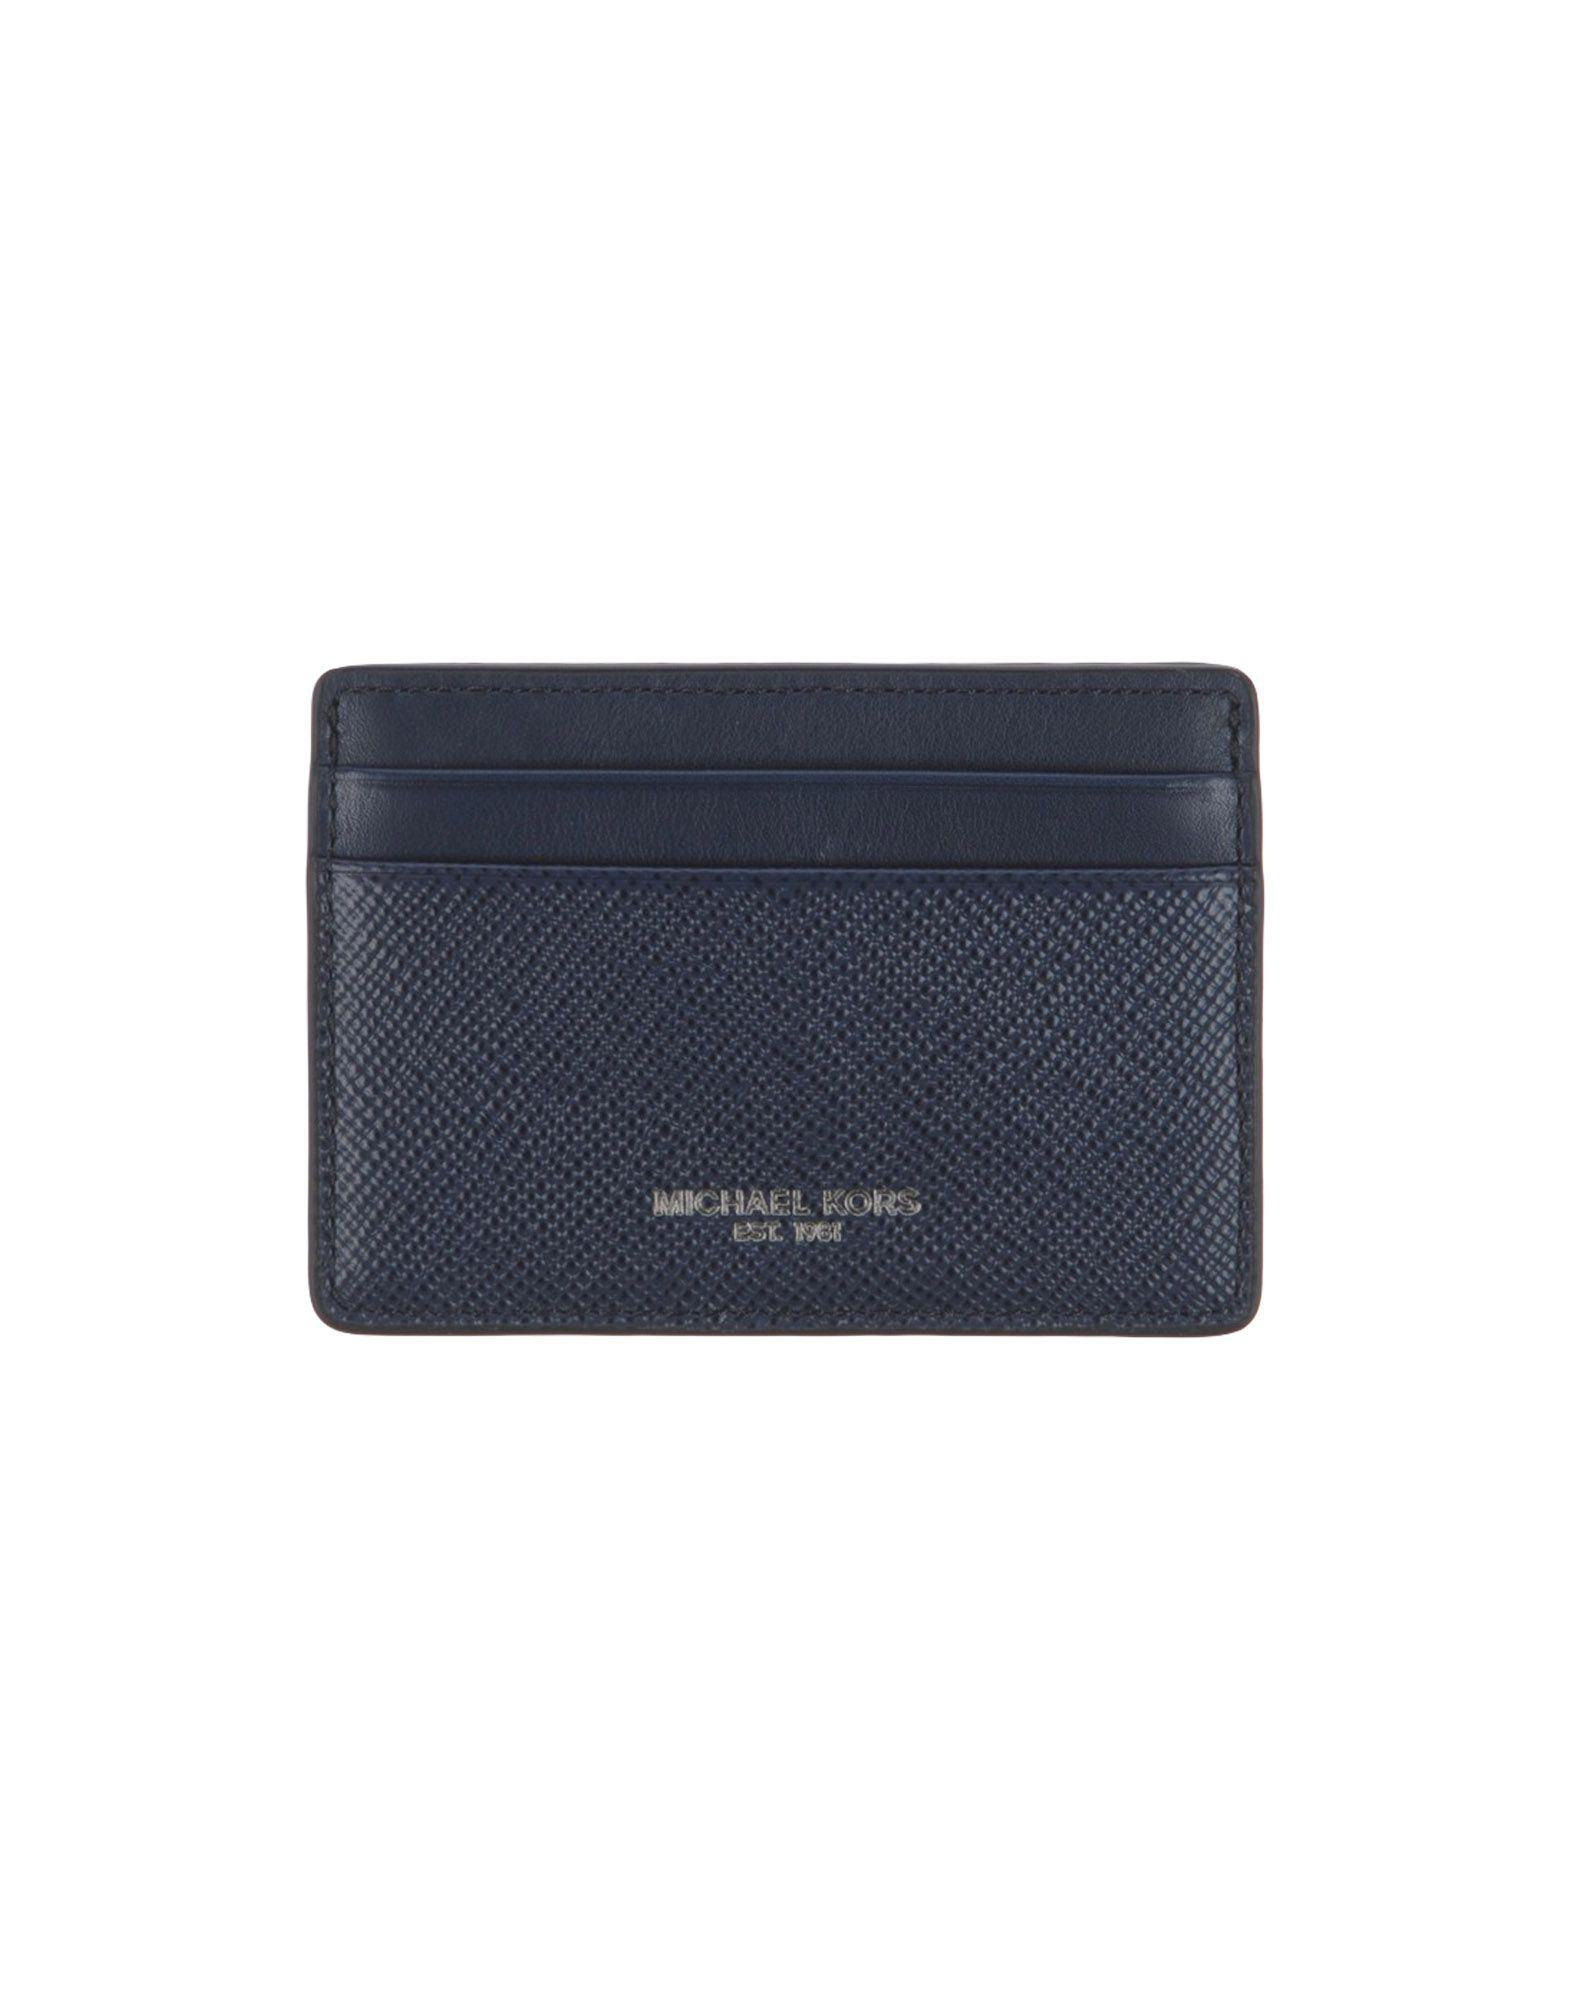 2f5e7c184565 Lyst - Michael Kors Document Holder in Blue for Men